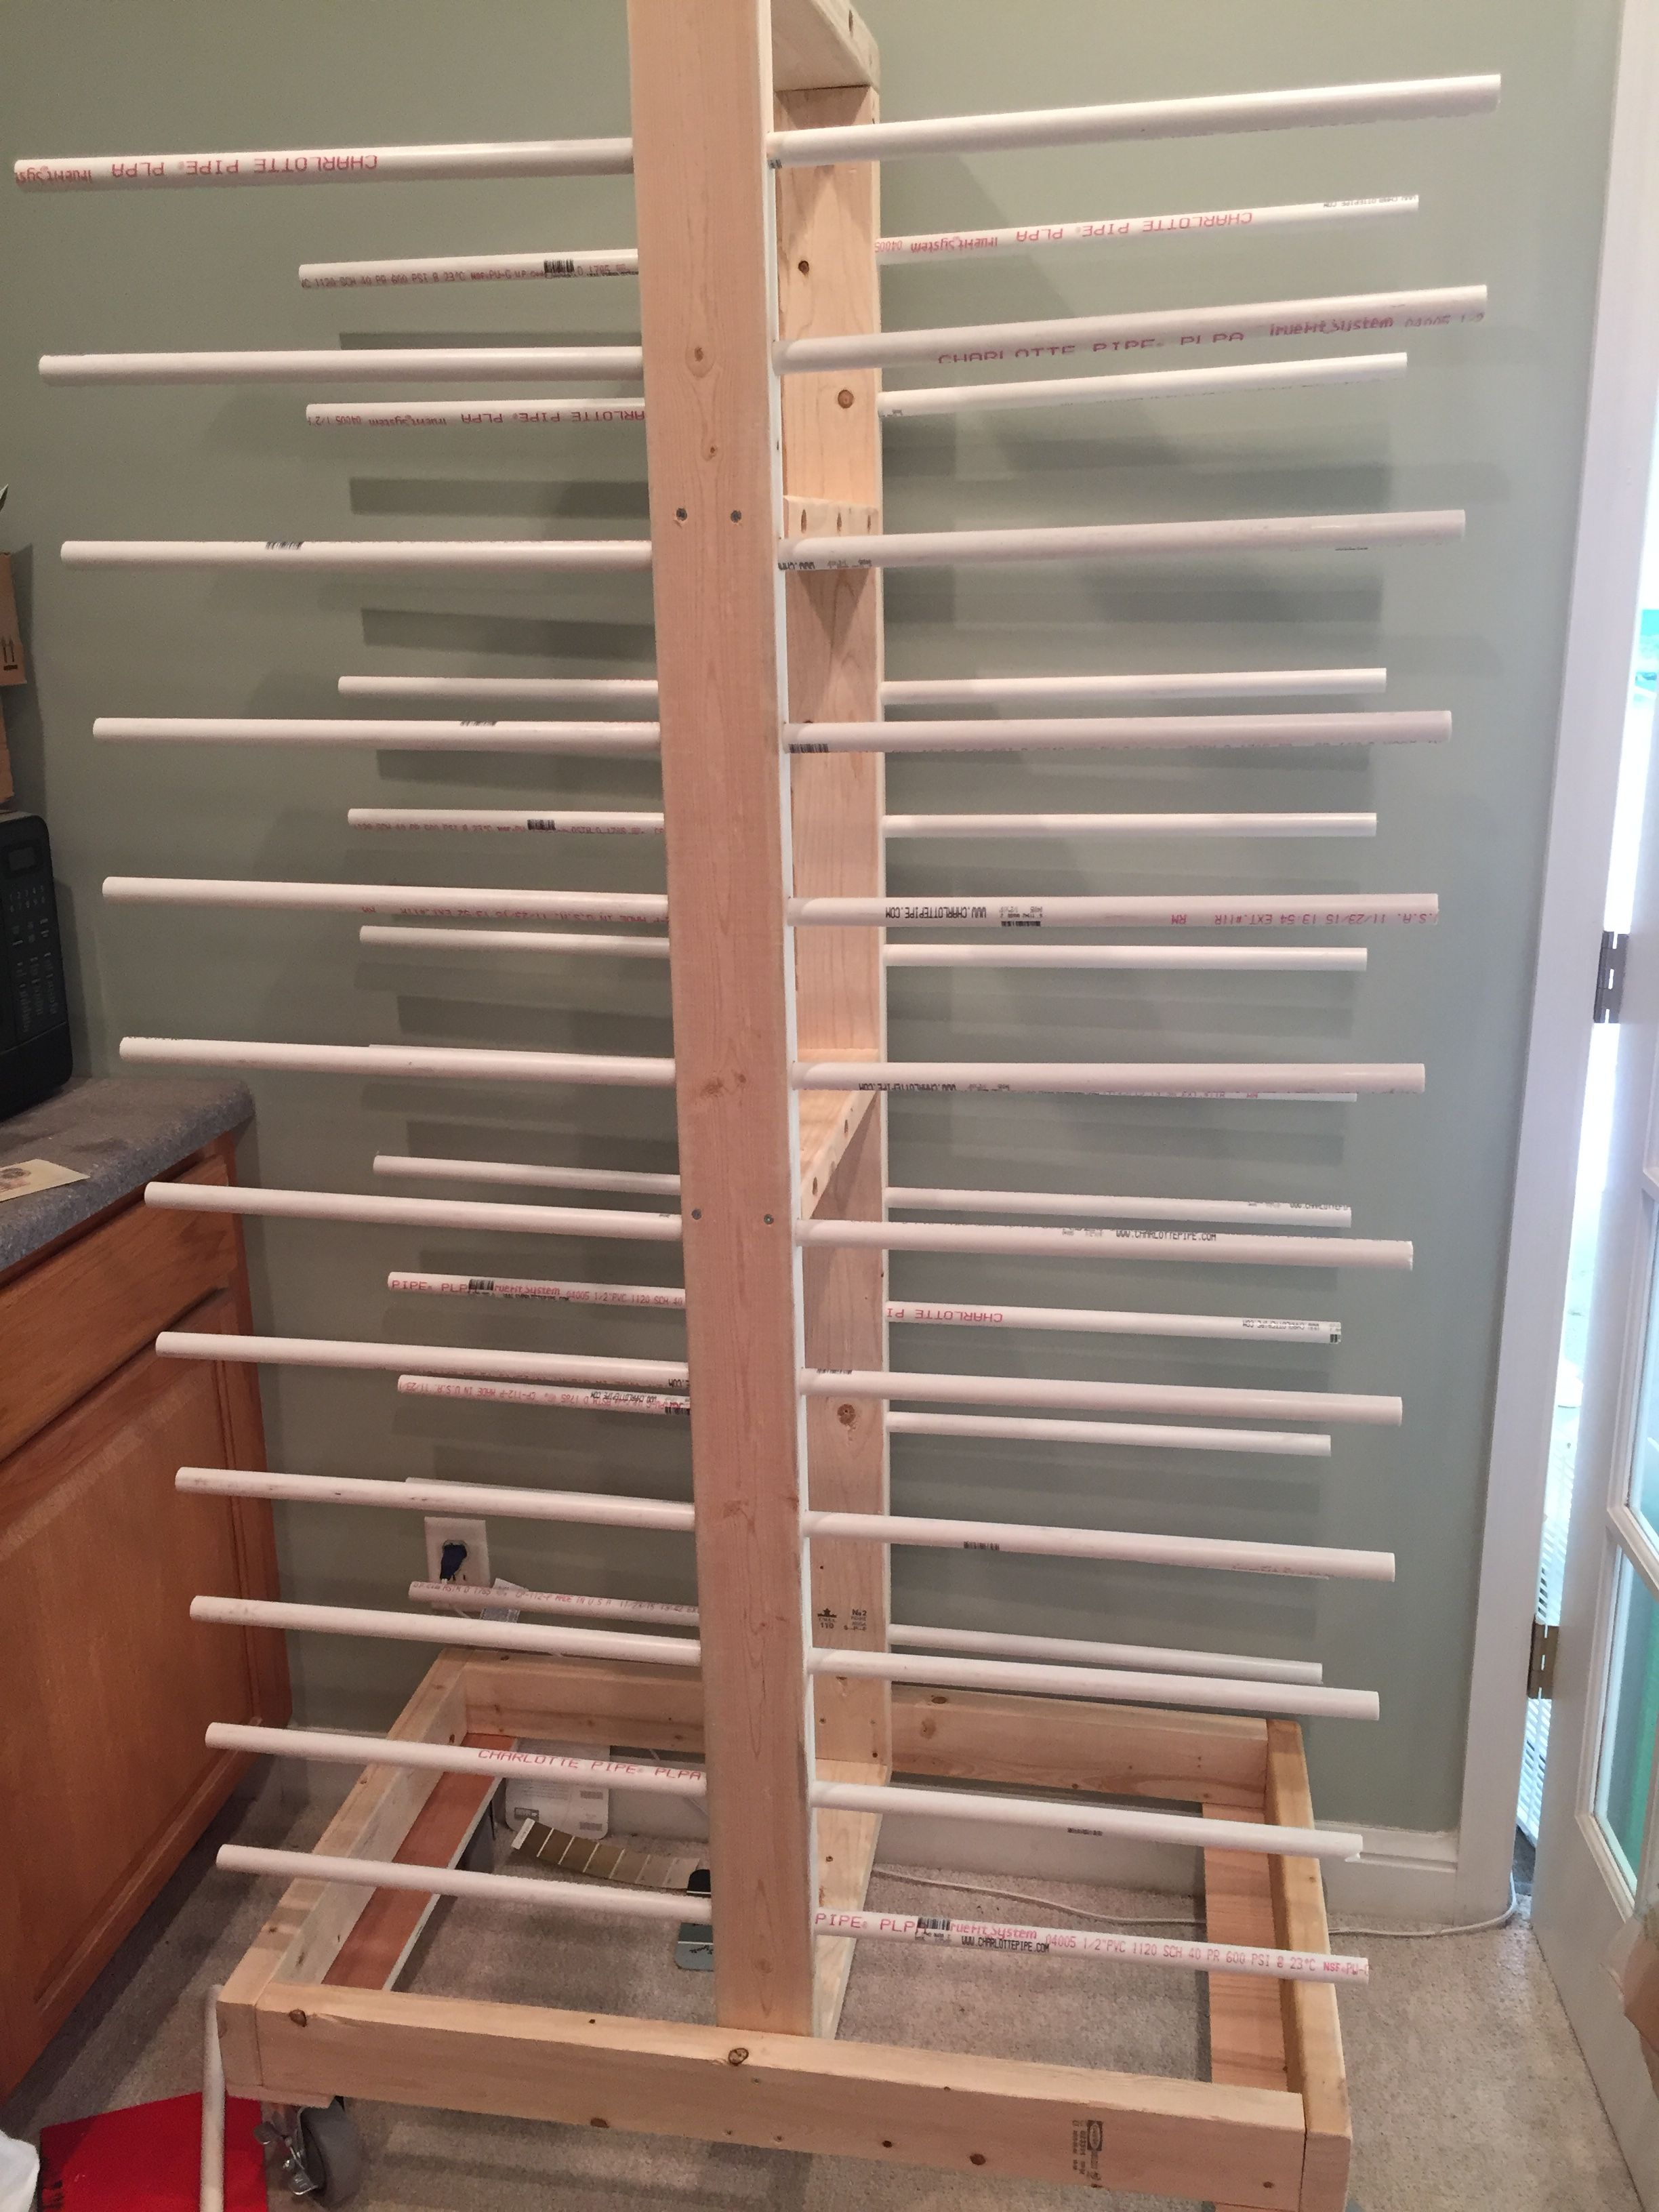 DIY Cabinet door drying rack from pvc pipe & 2x4 lumber ...